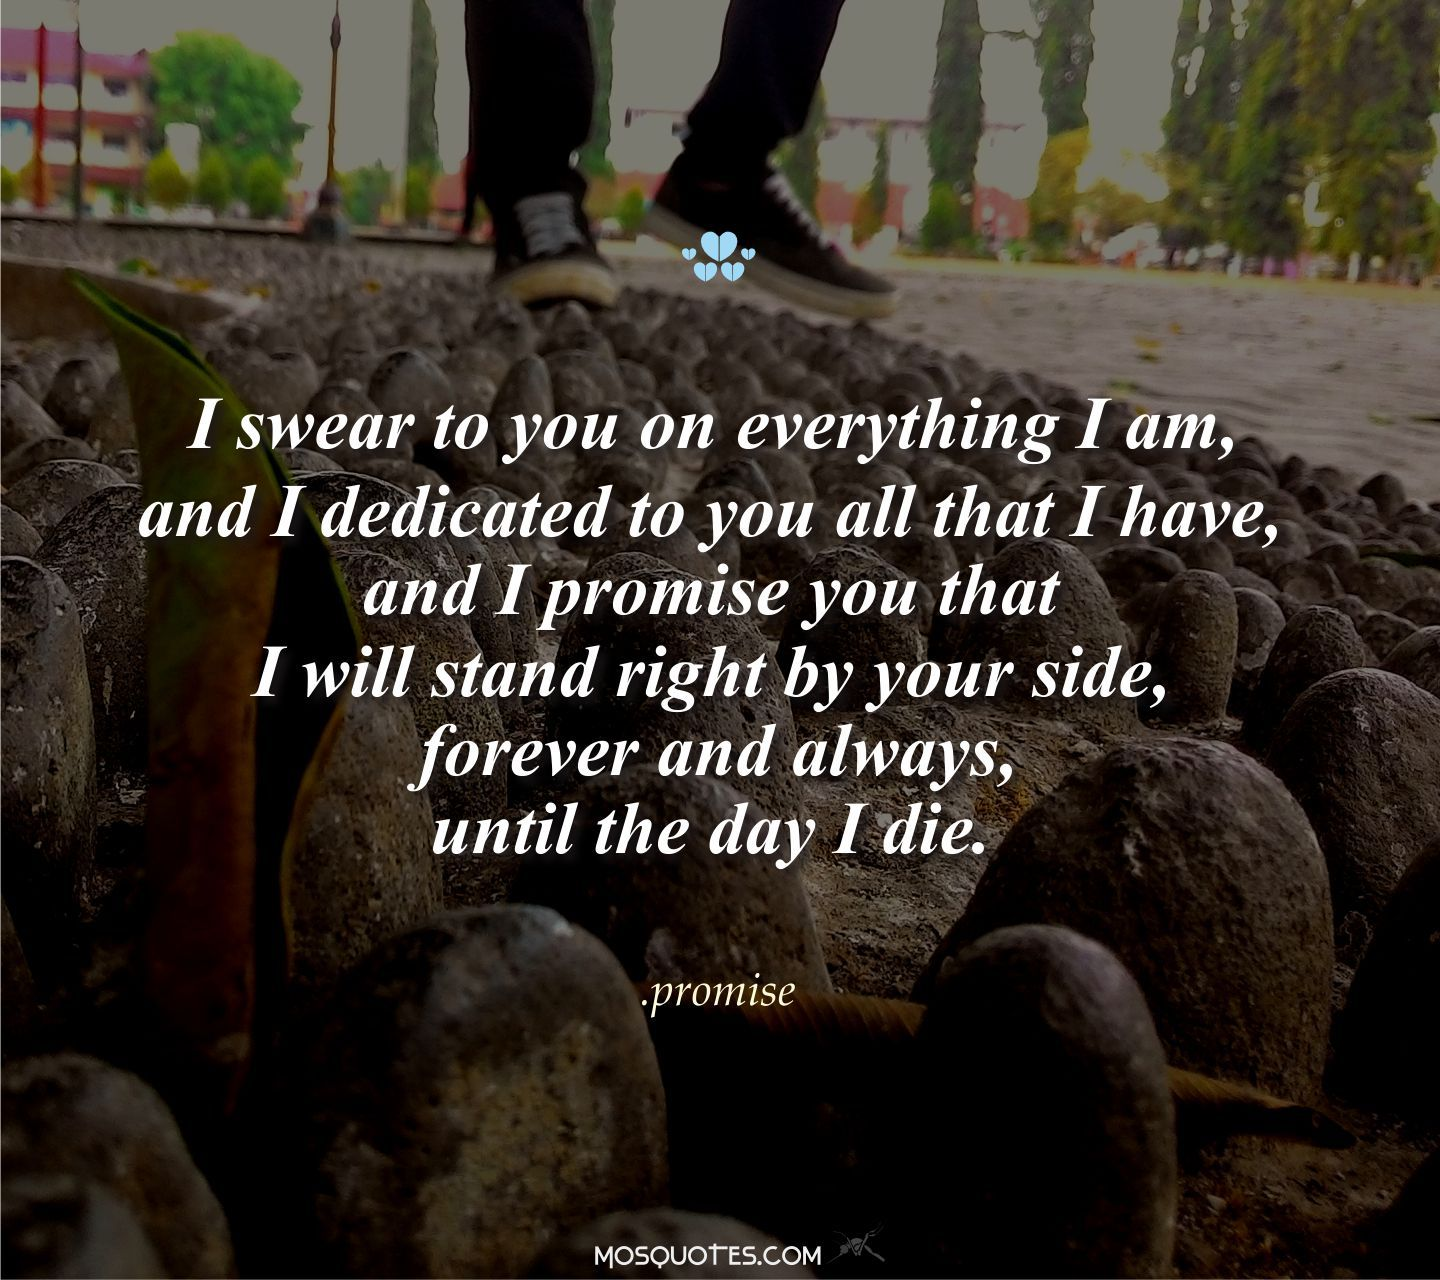 I Promise You That I Will Stand Right By Your Side Mosquotes Forever Love Quotes Emo Love Quotes I Promise You